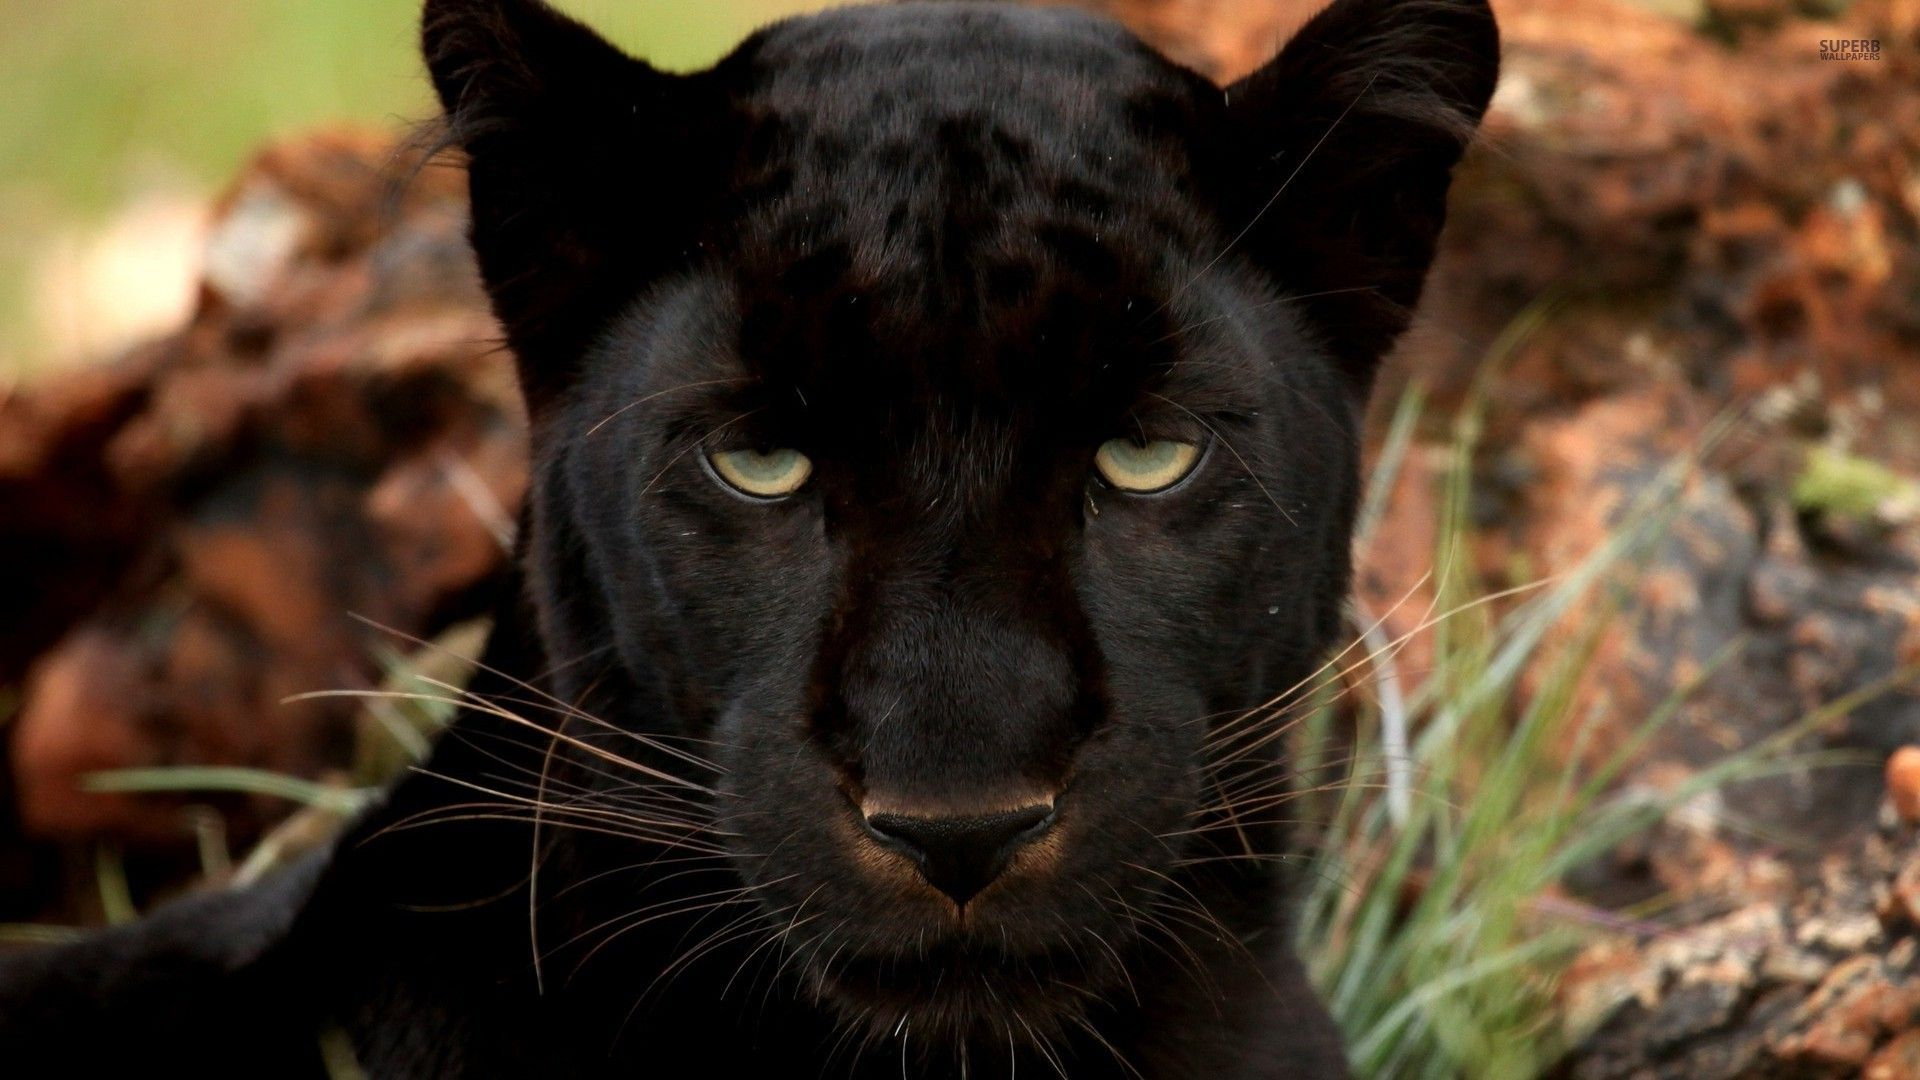 black panther Big cats photography, Wild cats, Black panther